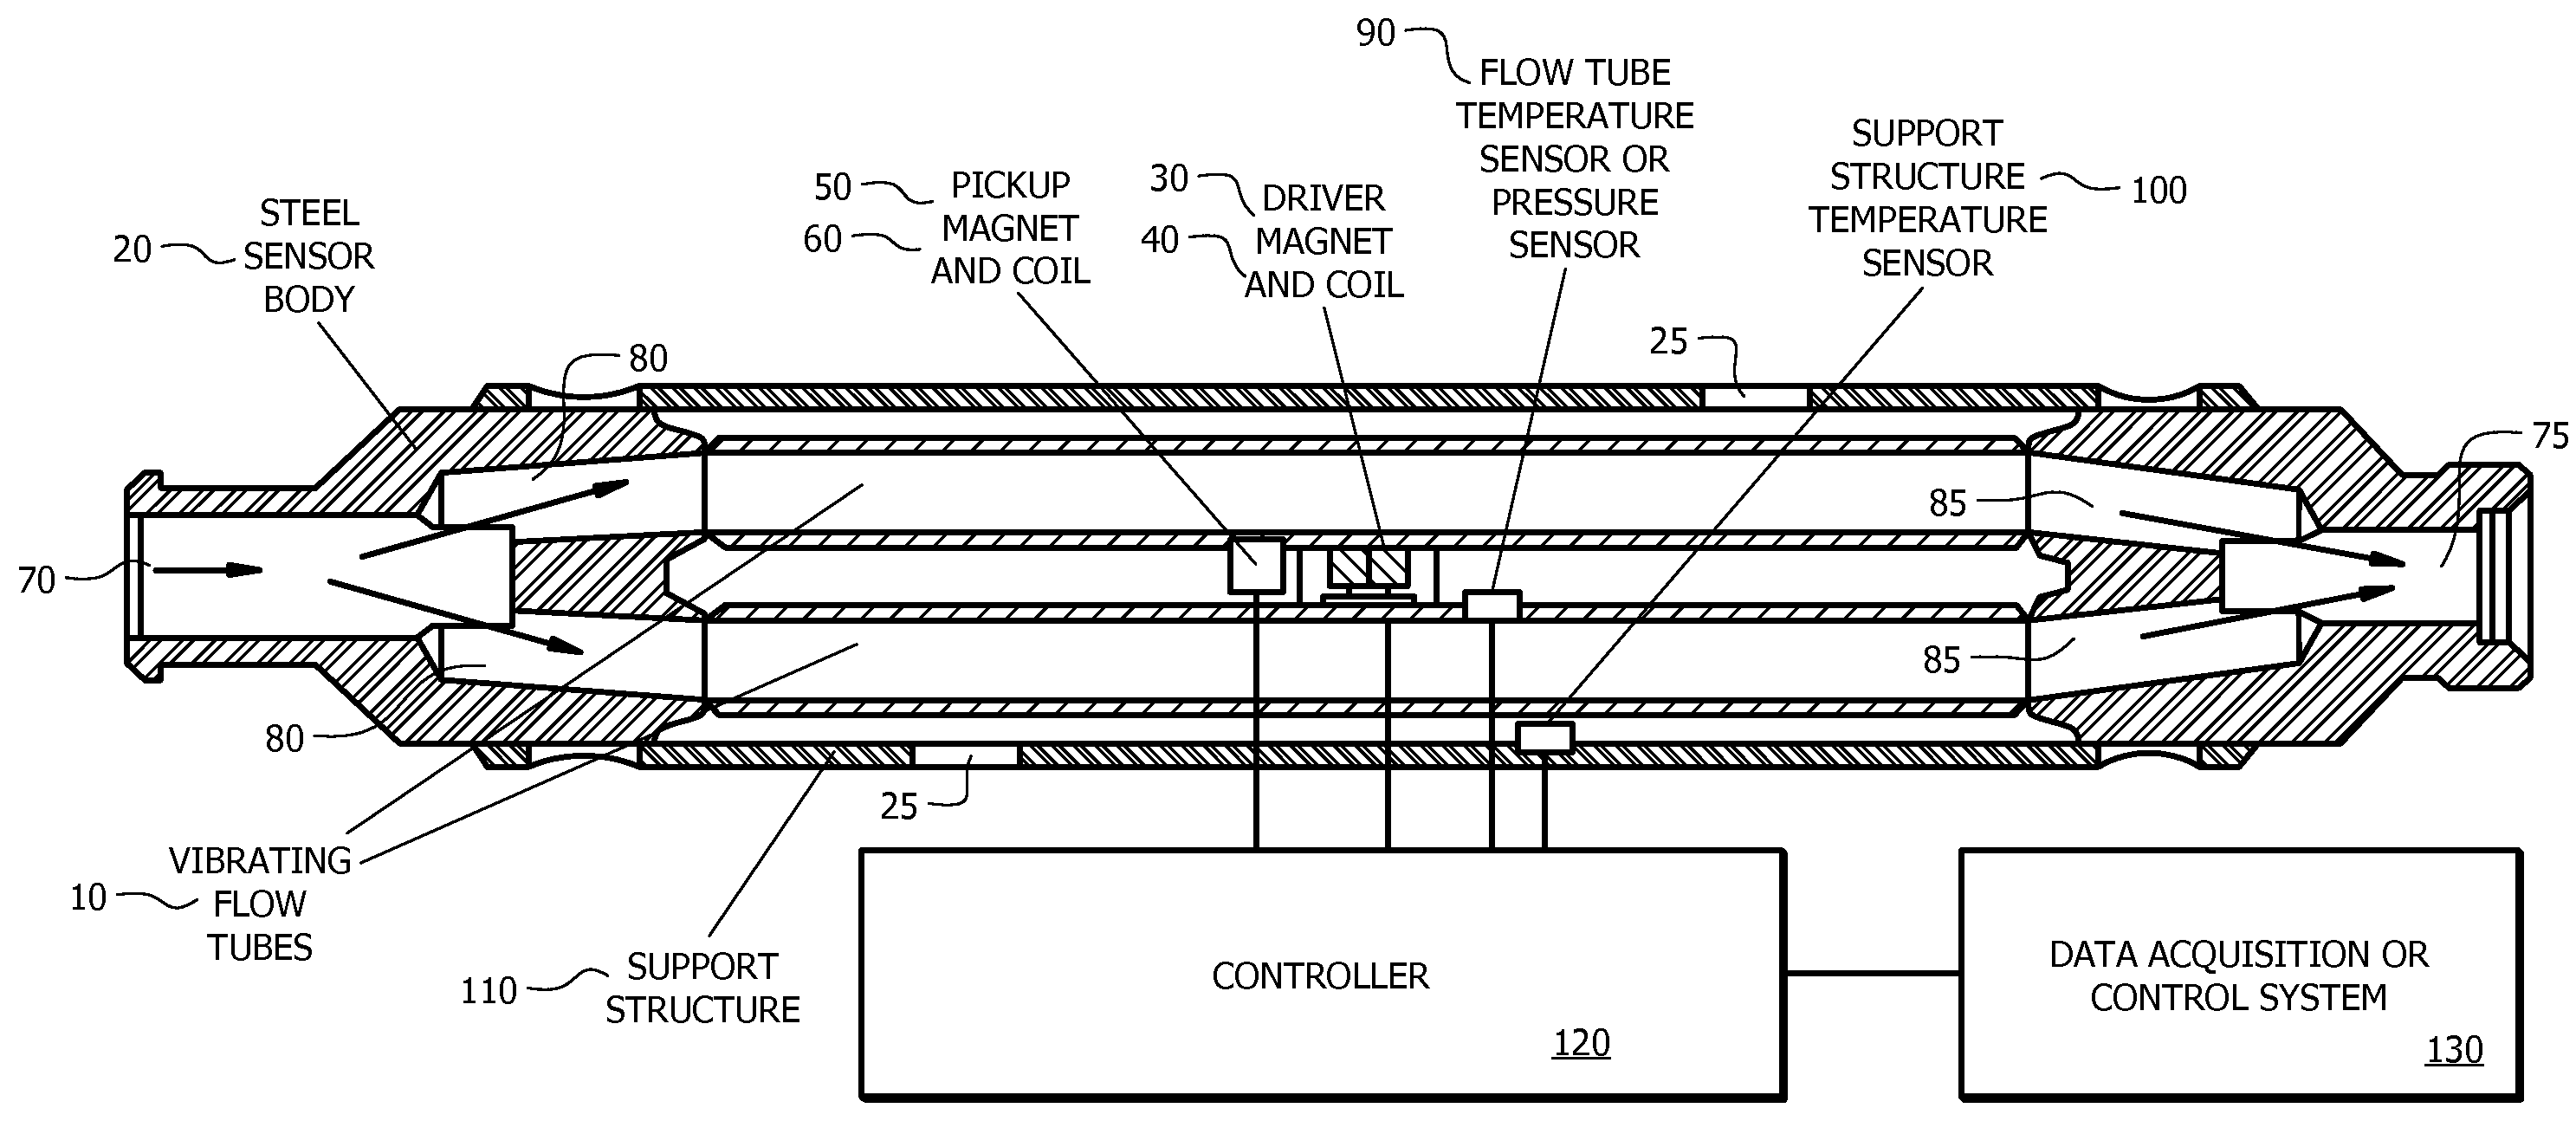 Lighting Fixture Google Patents On Wiring Recessed Lights In Parallel